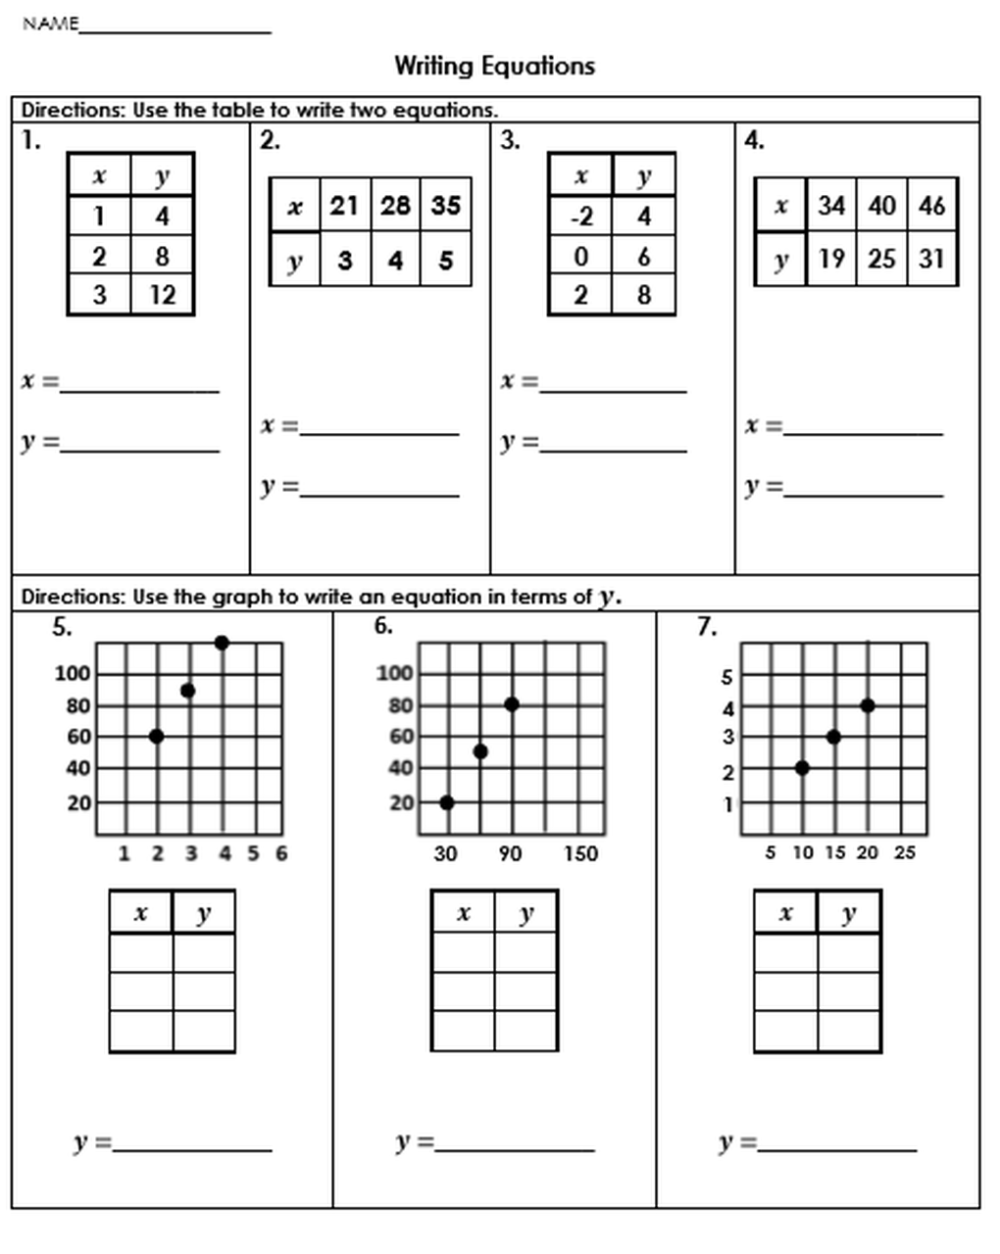 Writing Equations With Tables Graphs And Word Problems Amped Up Learning Writing Equations Word Problems Equations [ 1254 x 1000 Pixel ]